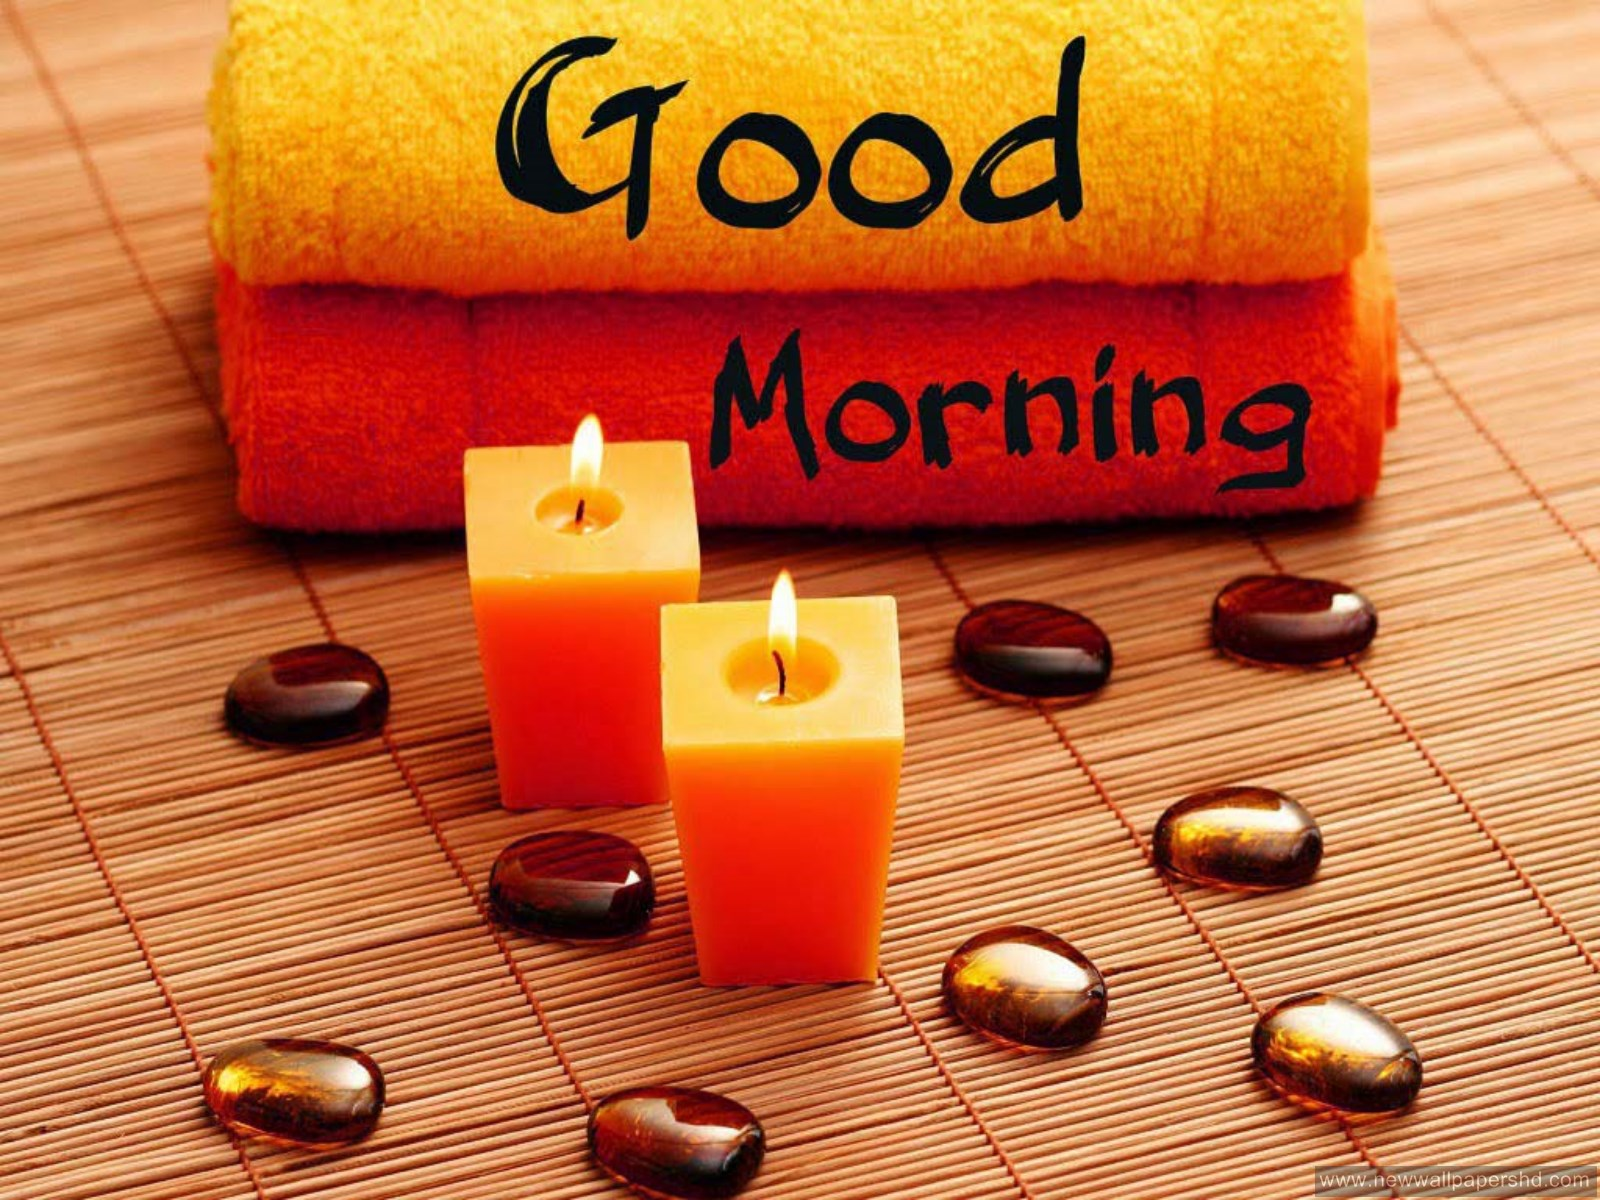 Wallpaper download good morning - Good Morning Best Wish Wallpaper